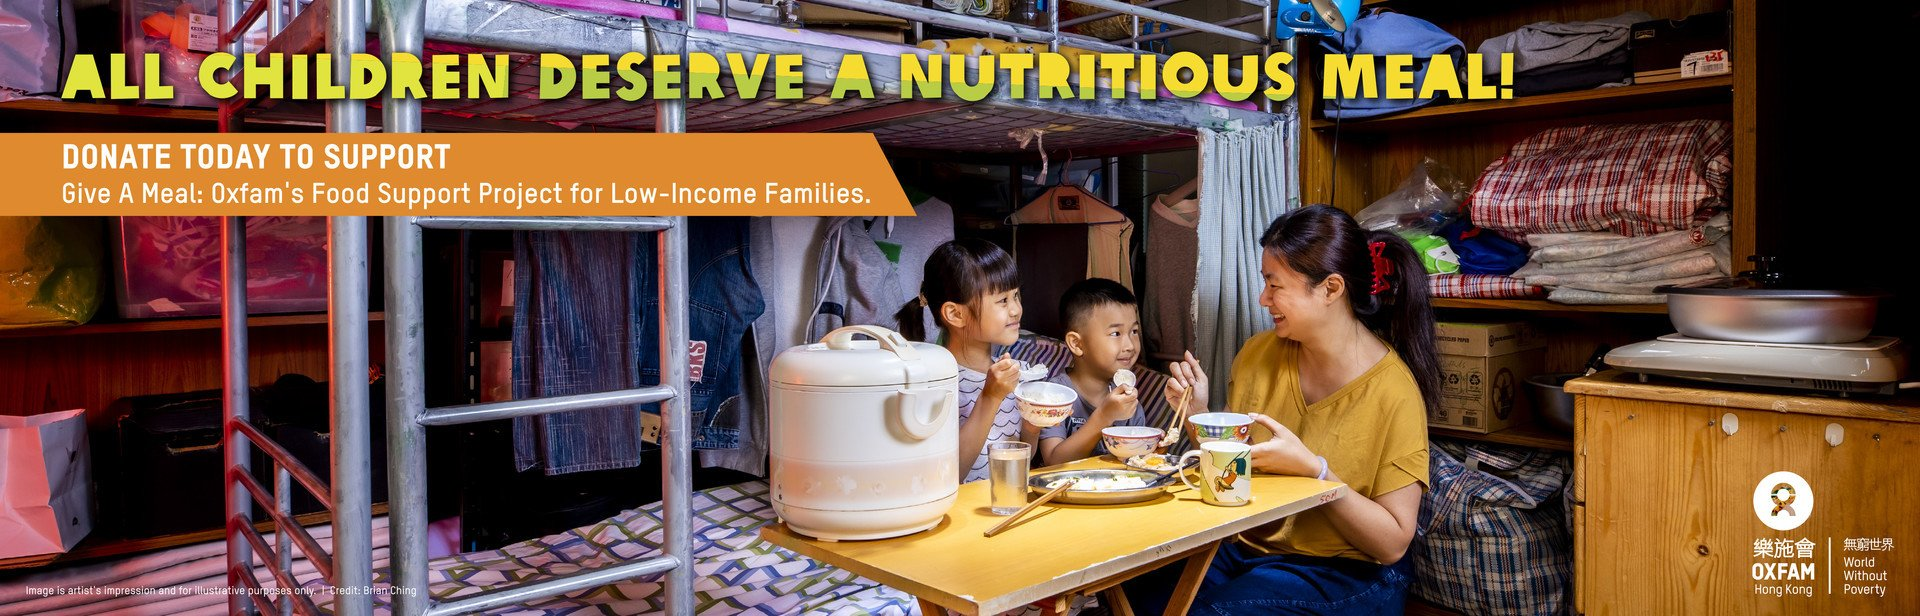 Give A Meal: Oxfam's Food Support Project for Low-Income Families